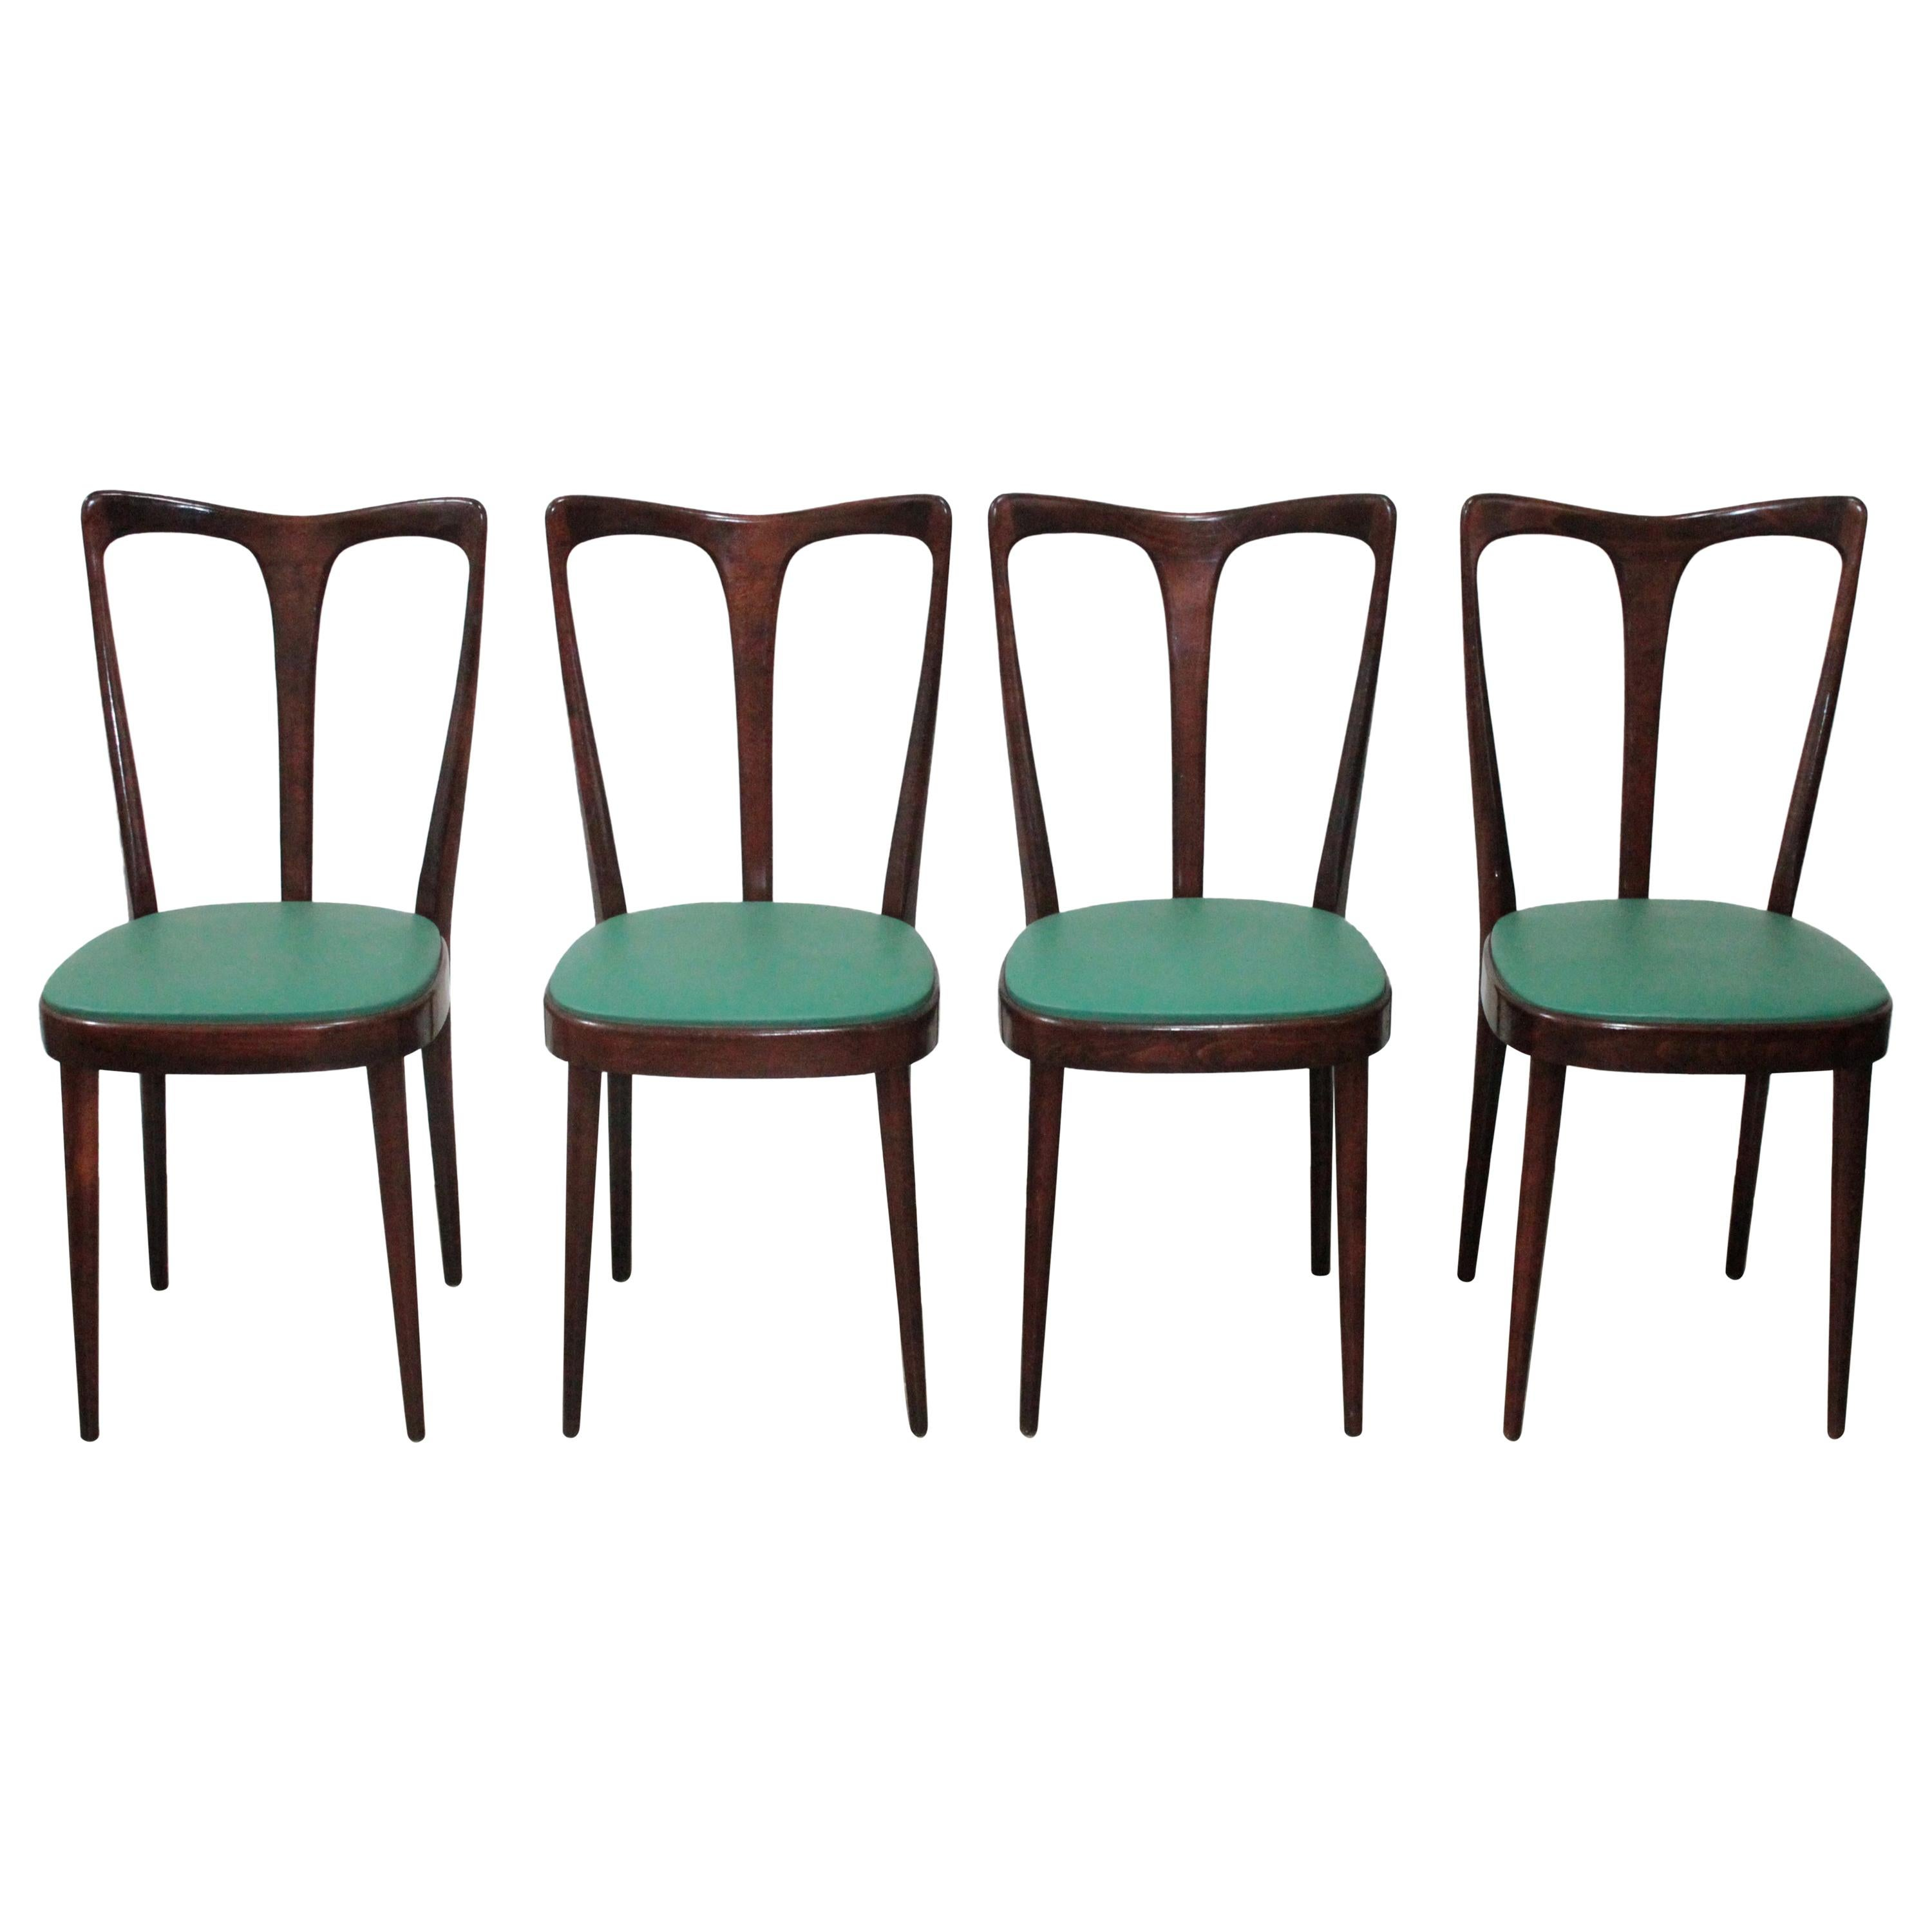 Set of 4 Italian Dining Chairs by Guglielmo Ulrich, 1950s